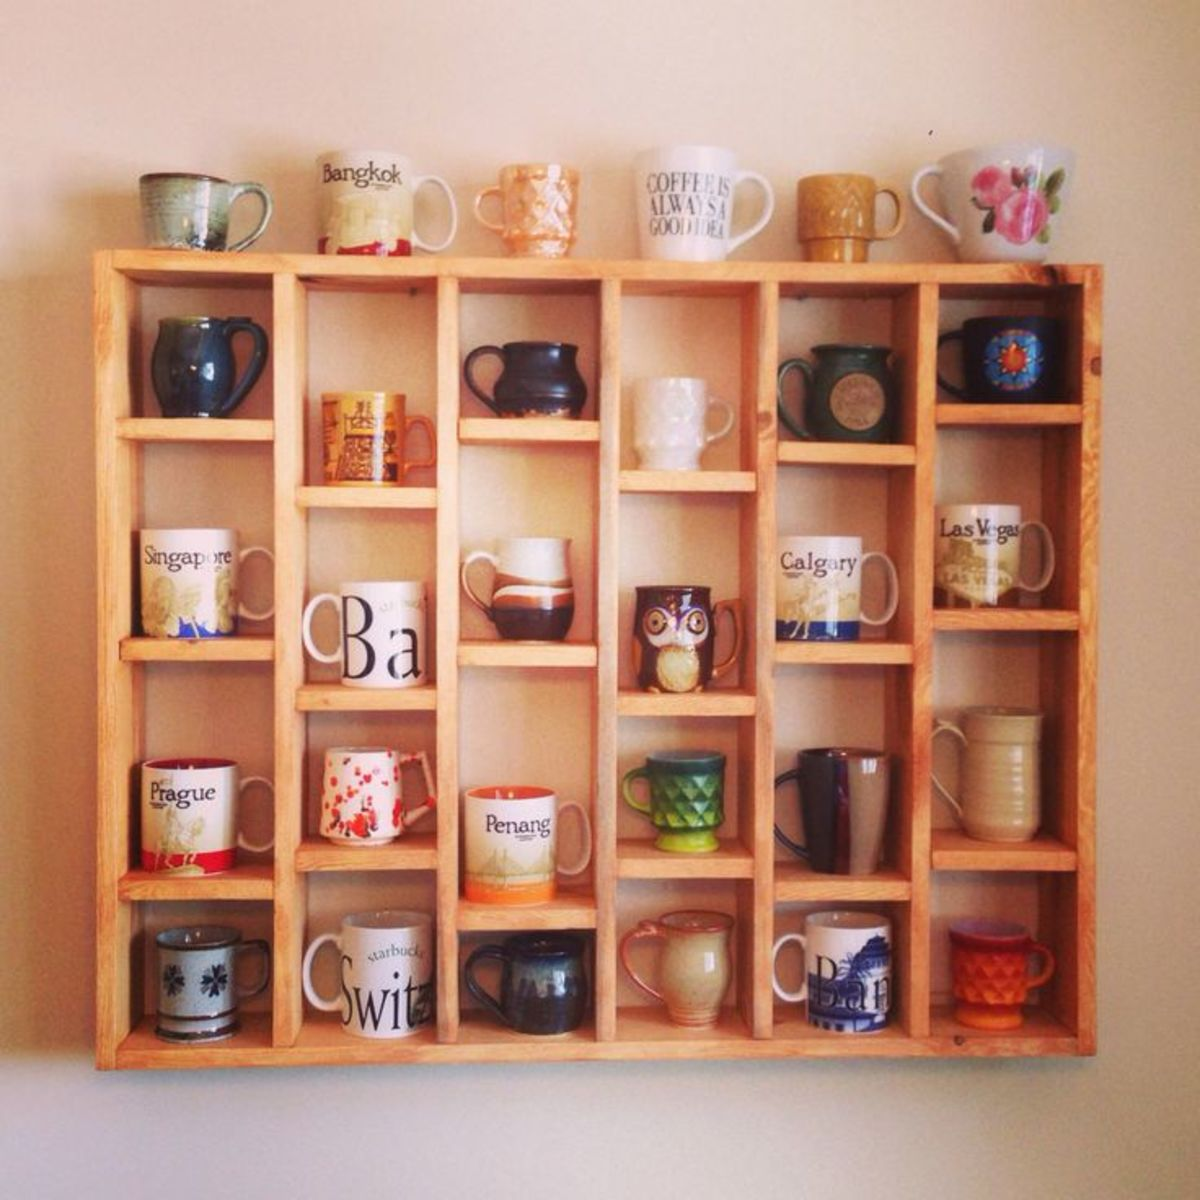 Coffee Mug Displays